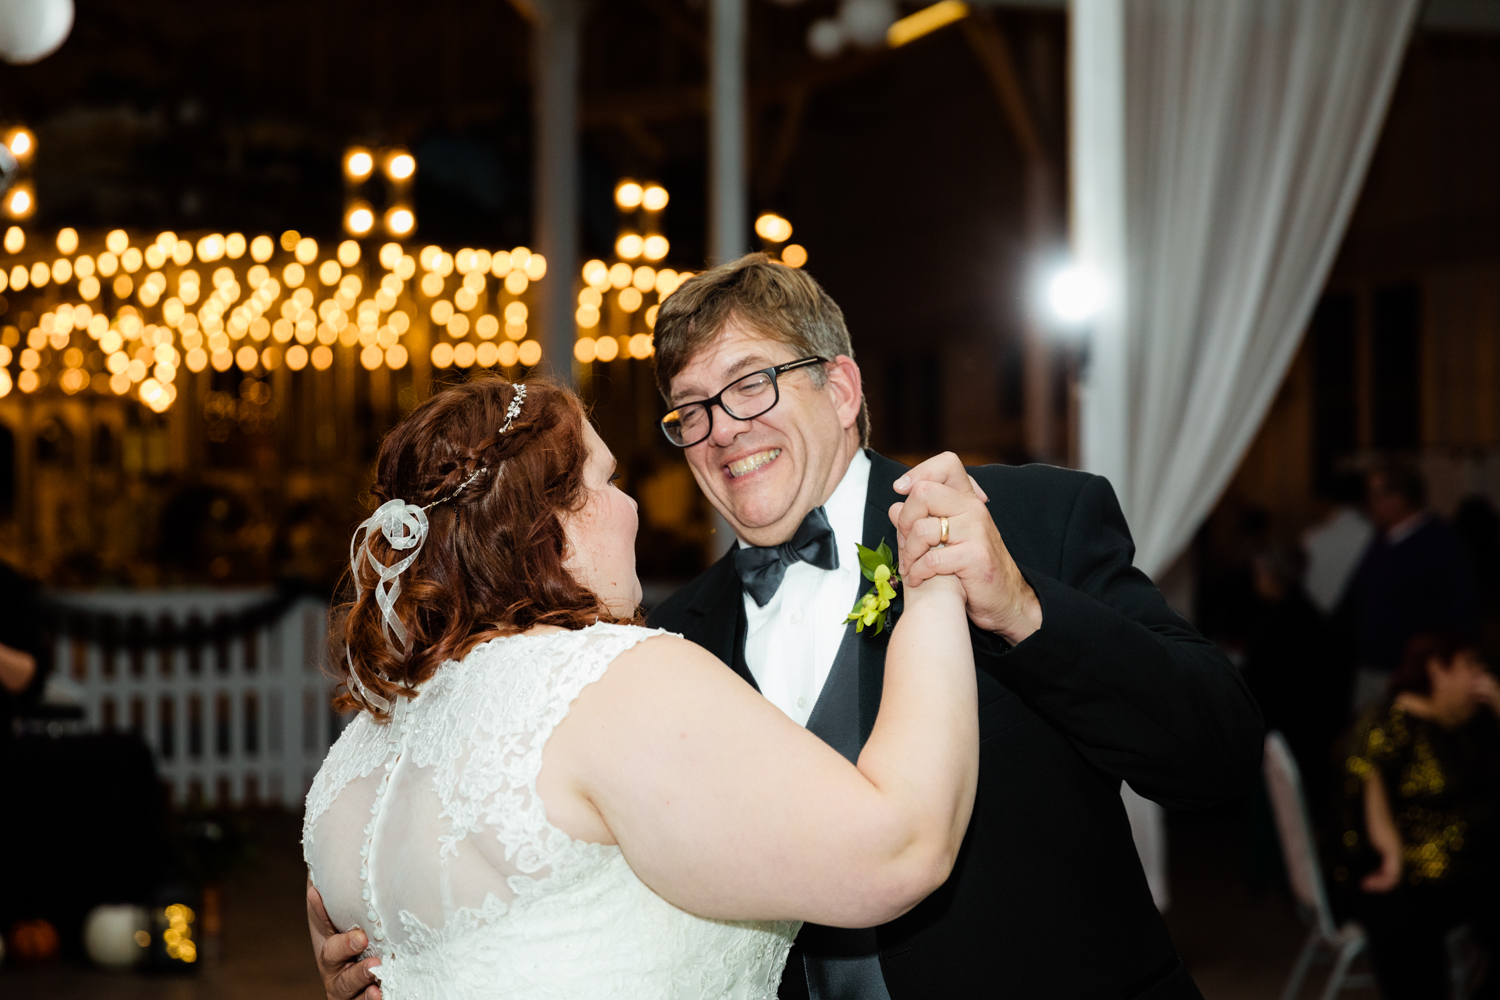 Bride and dad dance in front of carousel lights